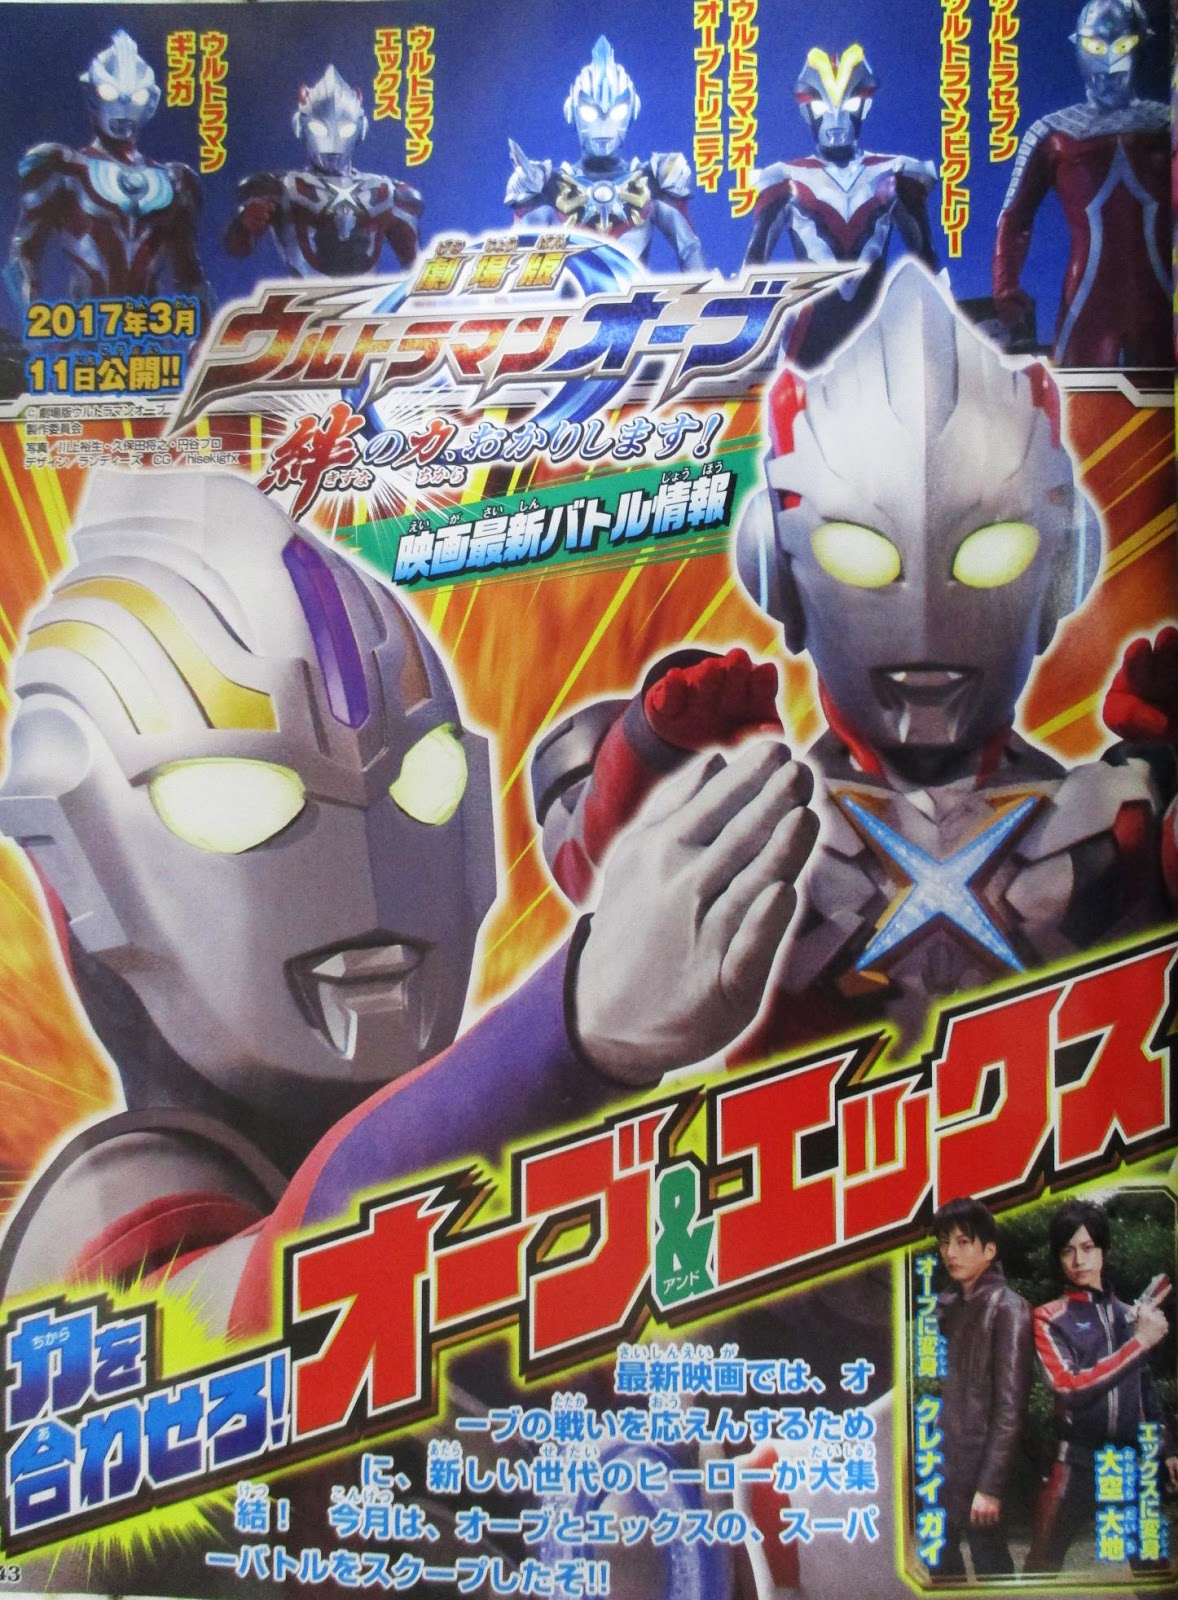 Kensuke Takahashi Will Reprise His Role Again As Daichi Ozora Ultraman X Character Appears To Help Gai Ikari Orb On This Upcoming Movie